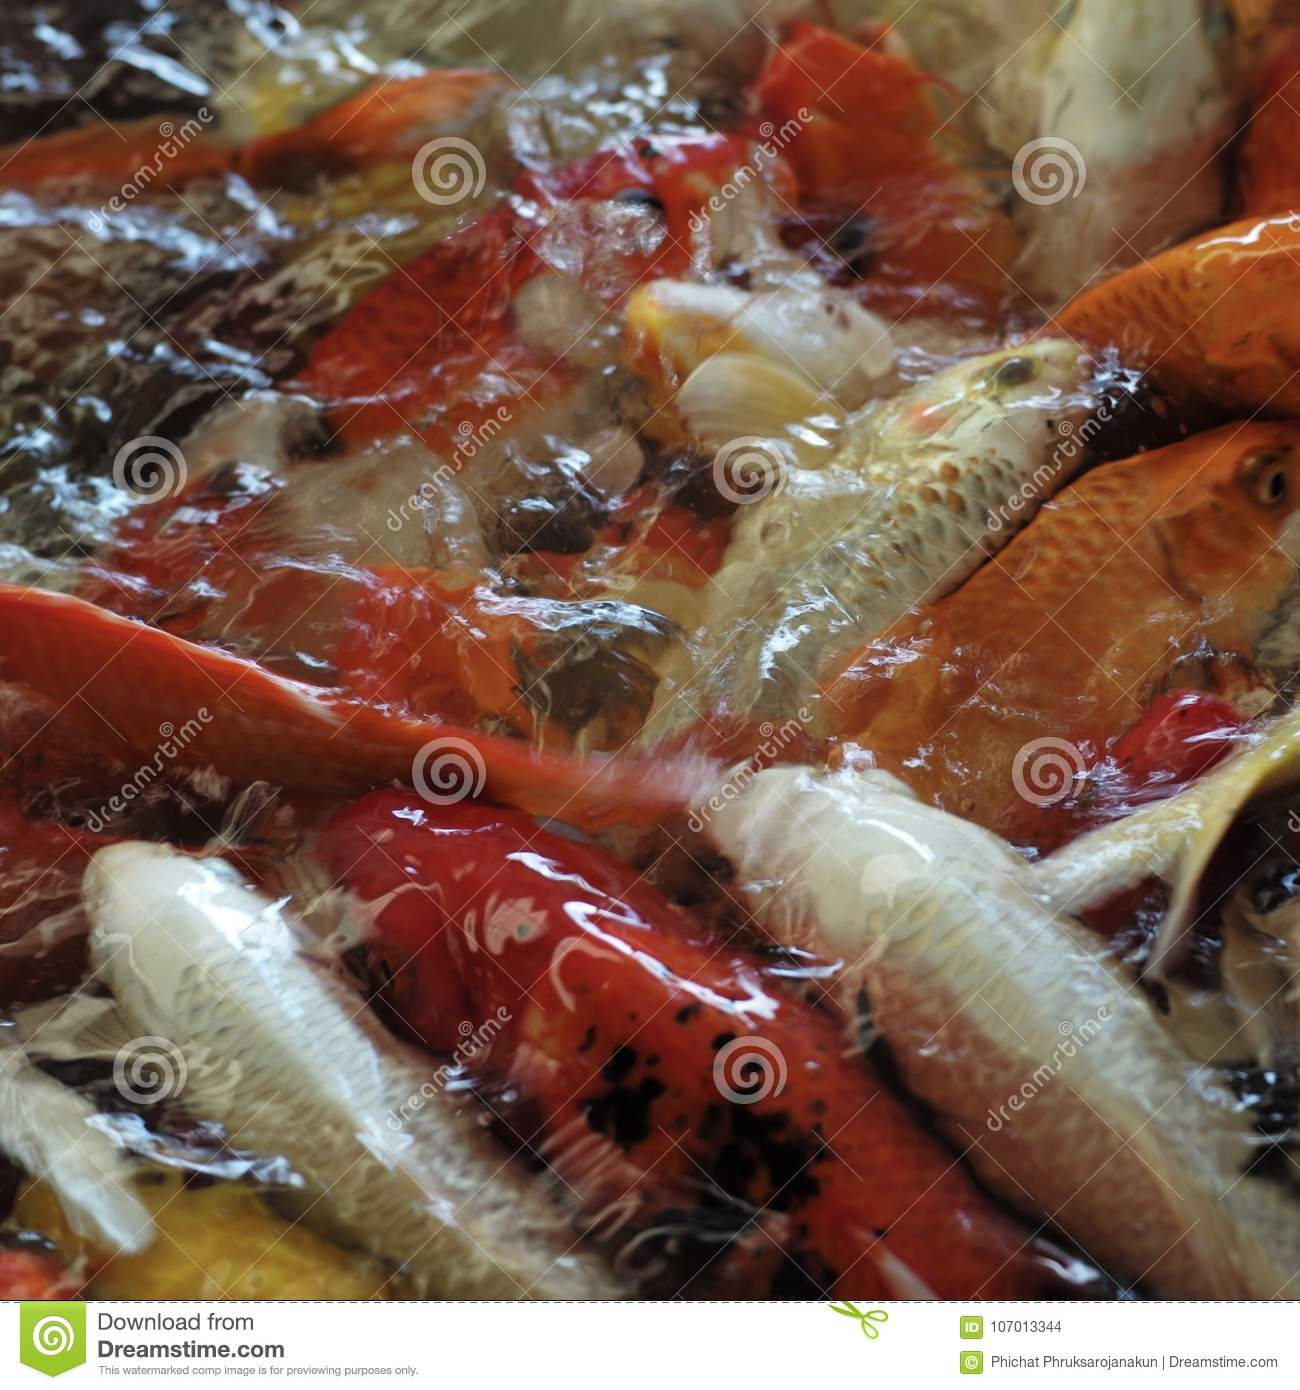 Group of colorful fish stock photo. Image of young, black - 107013344